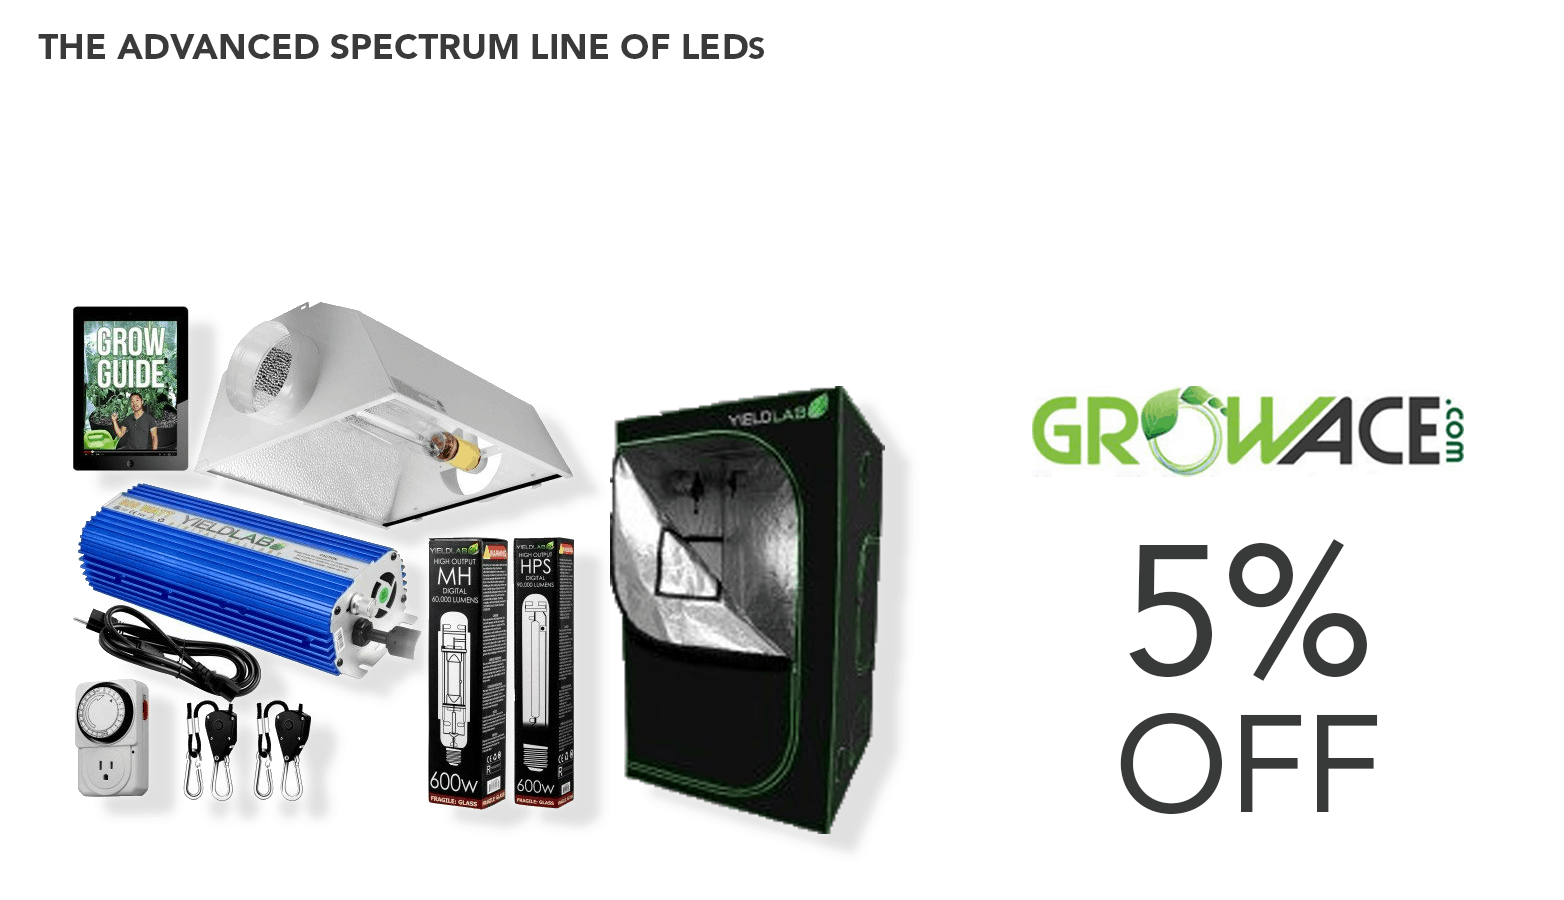 Cannabis grow equipment and GrowAce coupon